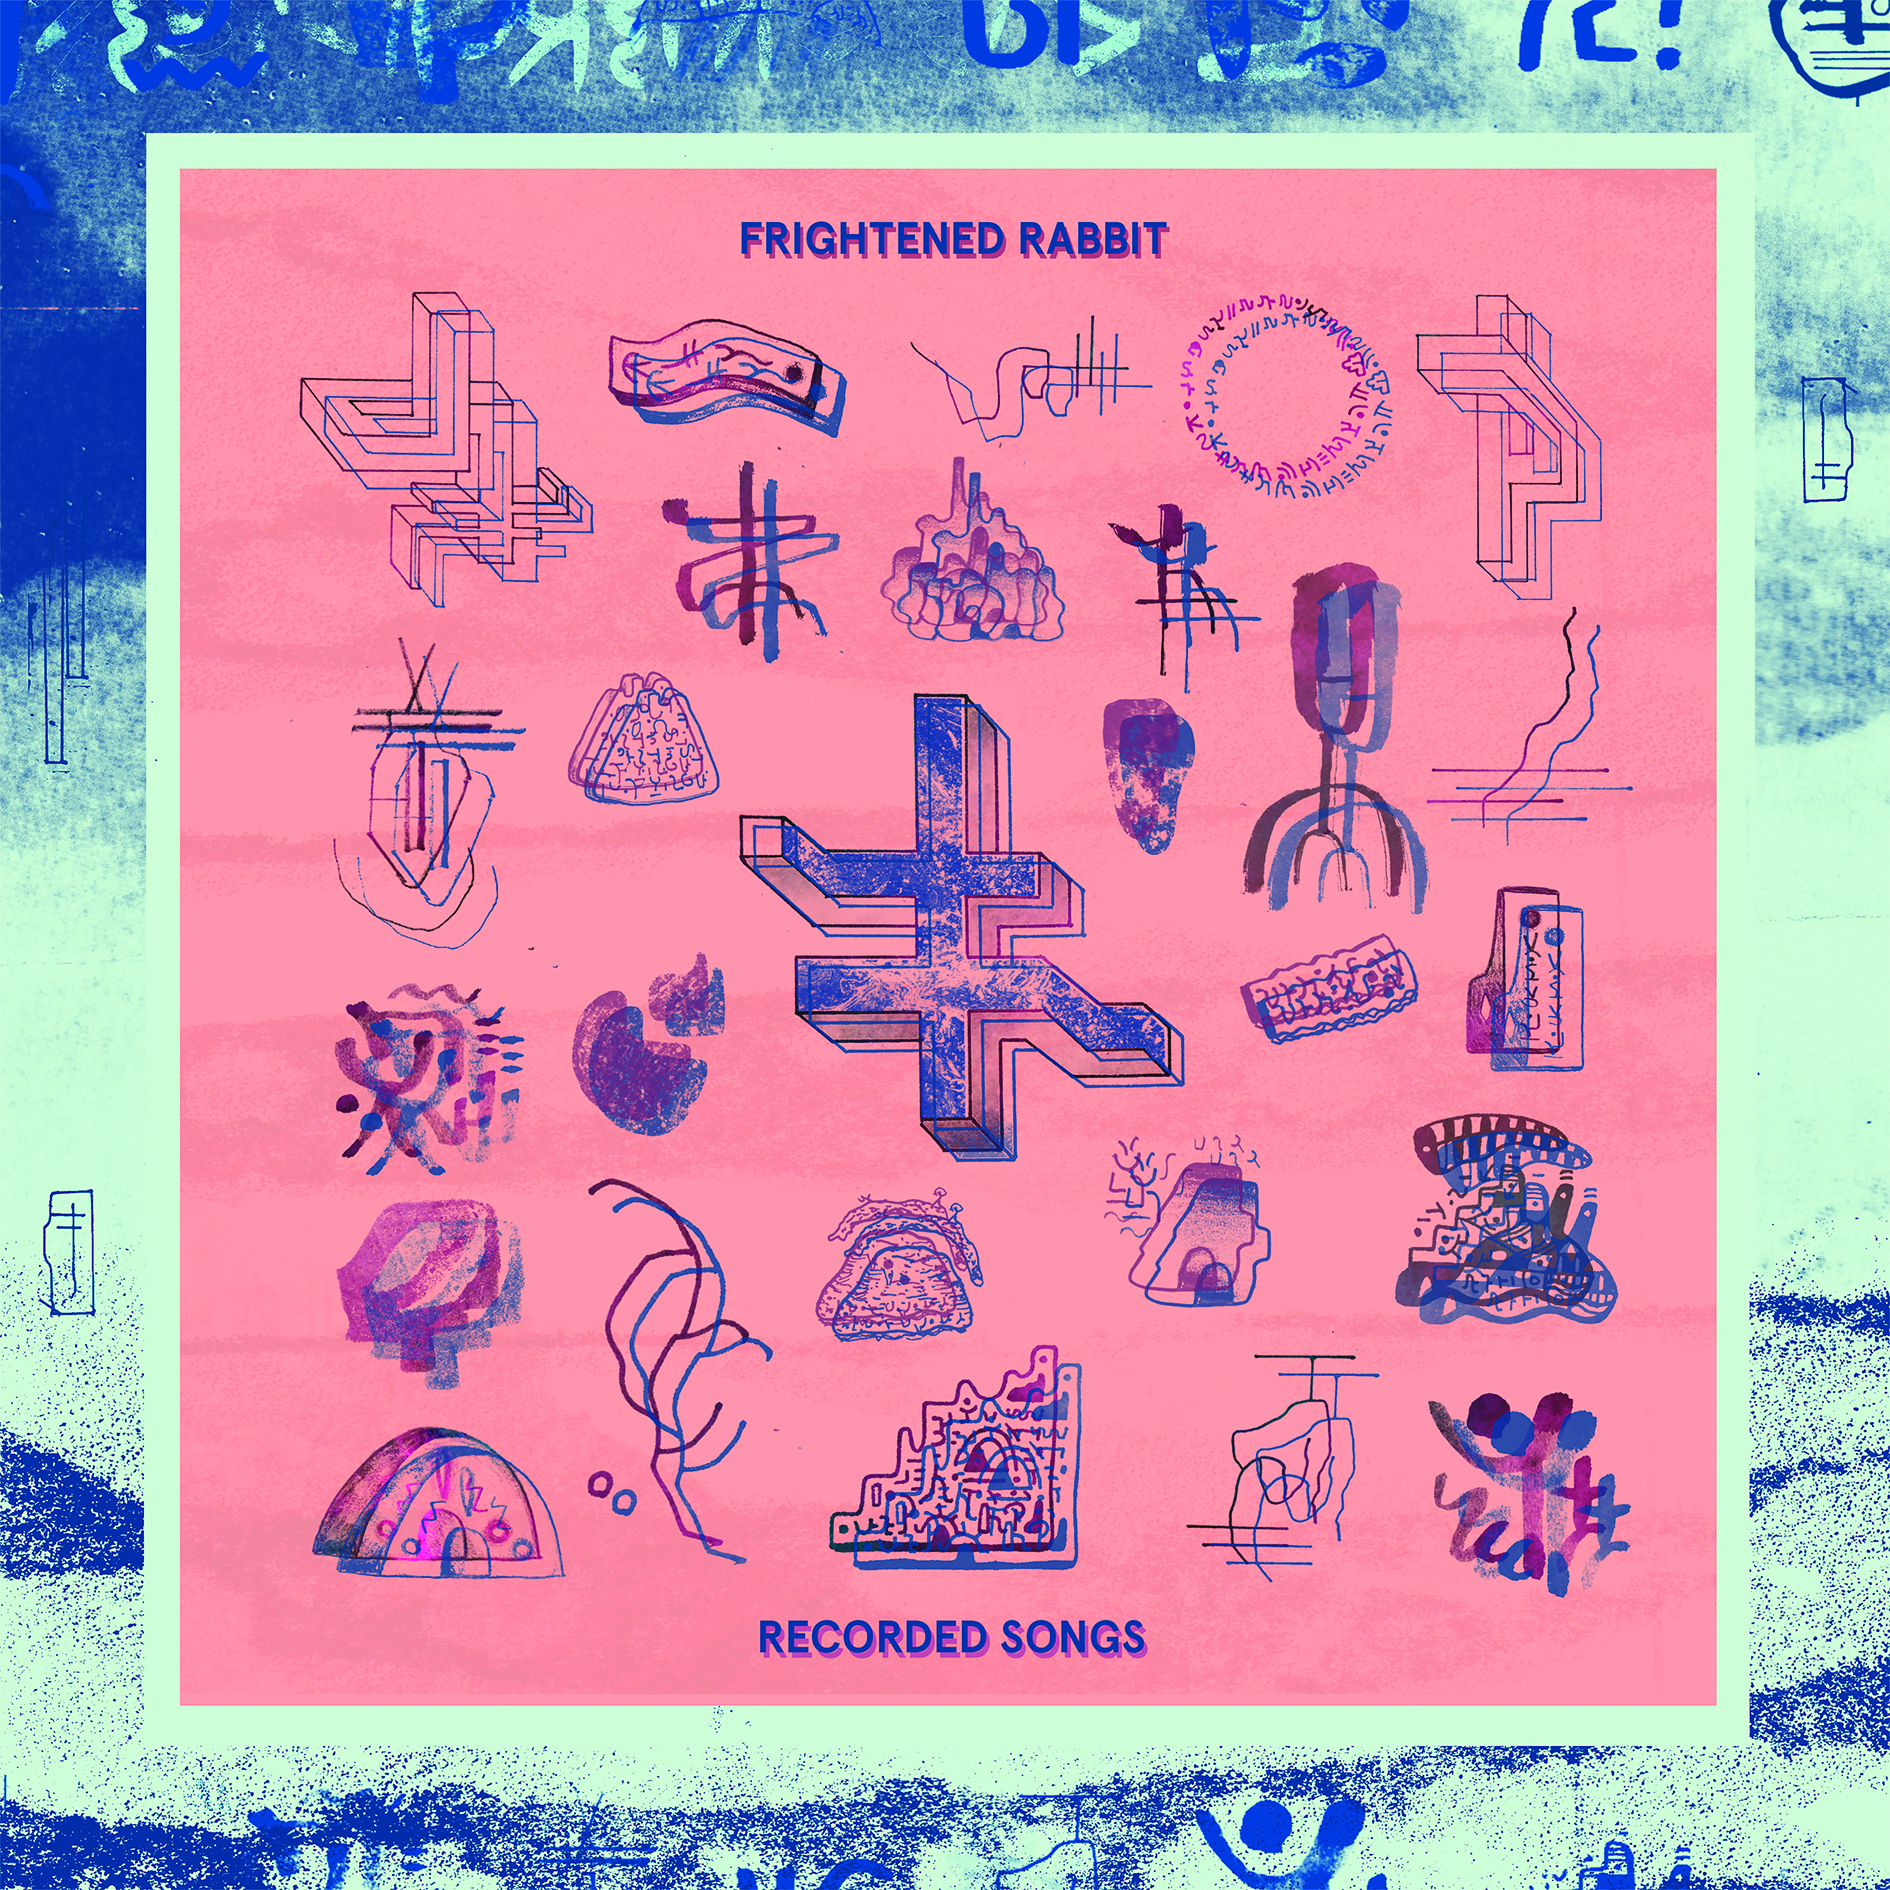 """12"""" vinyl cover art for Frightened Rabbit - Recorded Songs EP on Atlantic Records. Collaboration with Al White."""